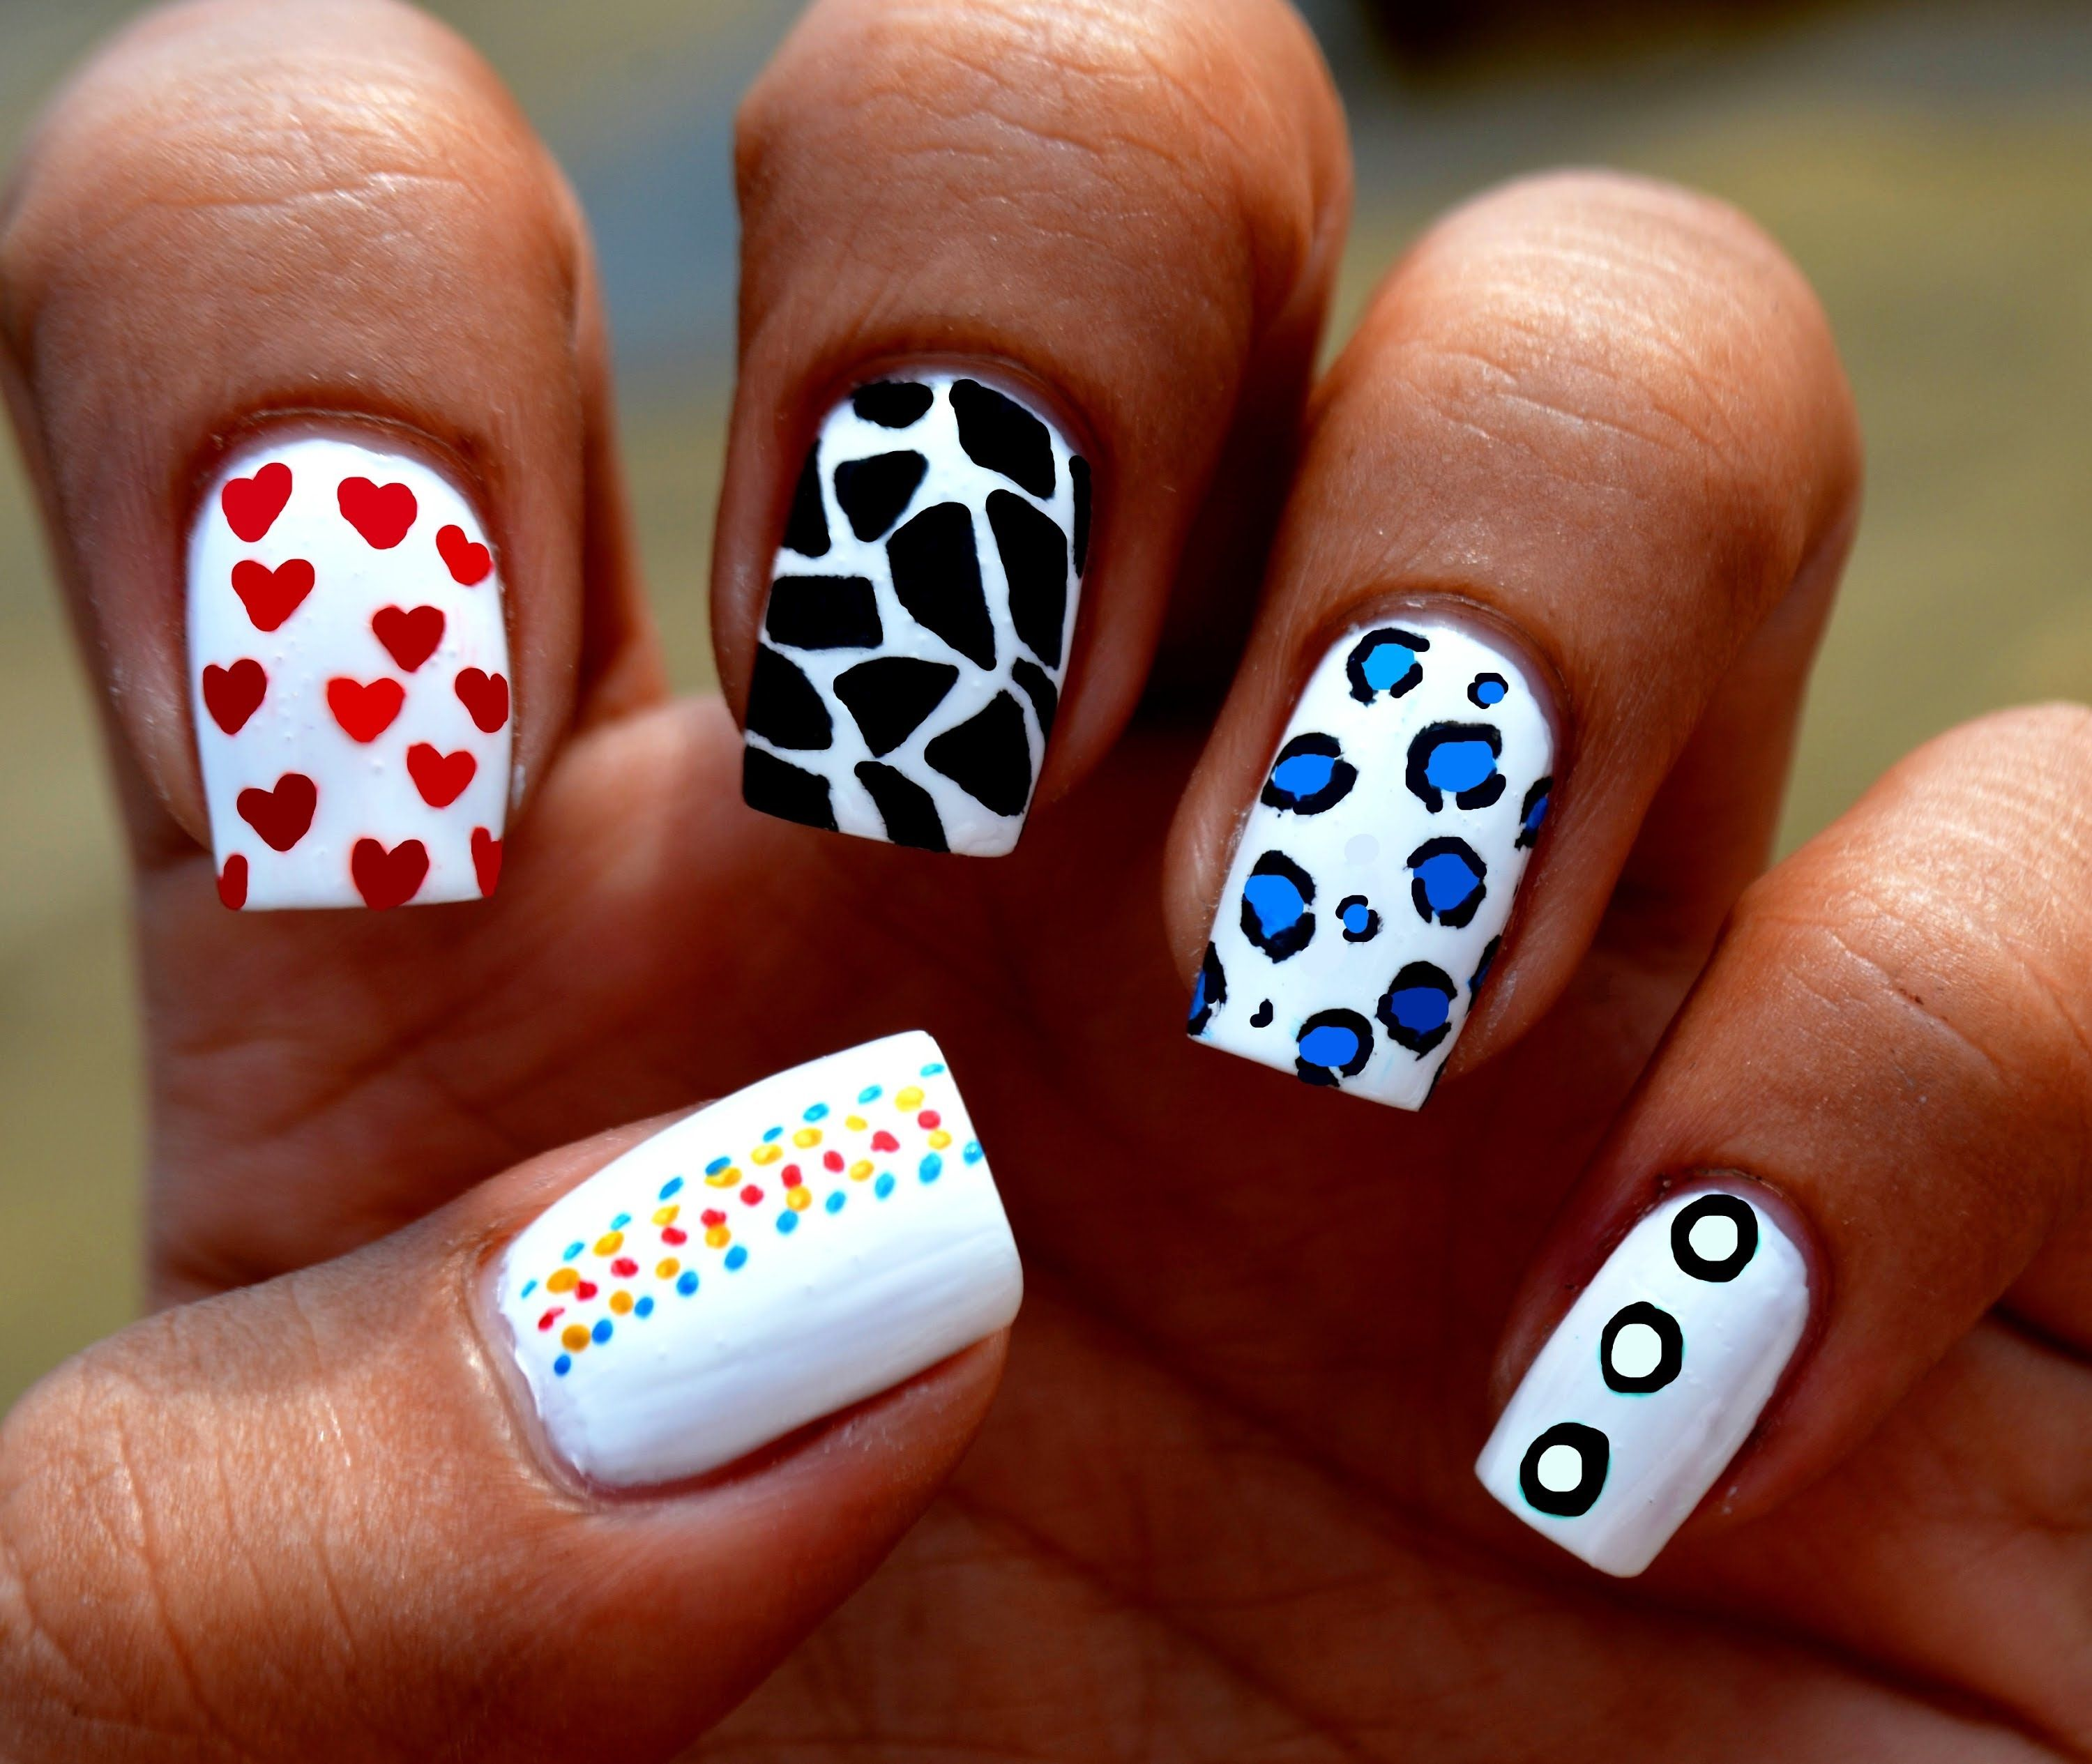 Toothpick Nail Design For Beginners Tutorial [Video] - http ...